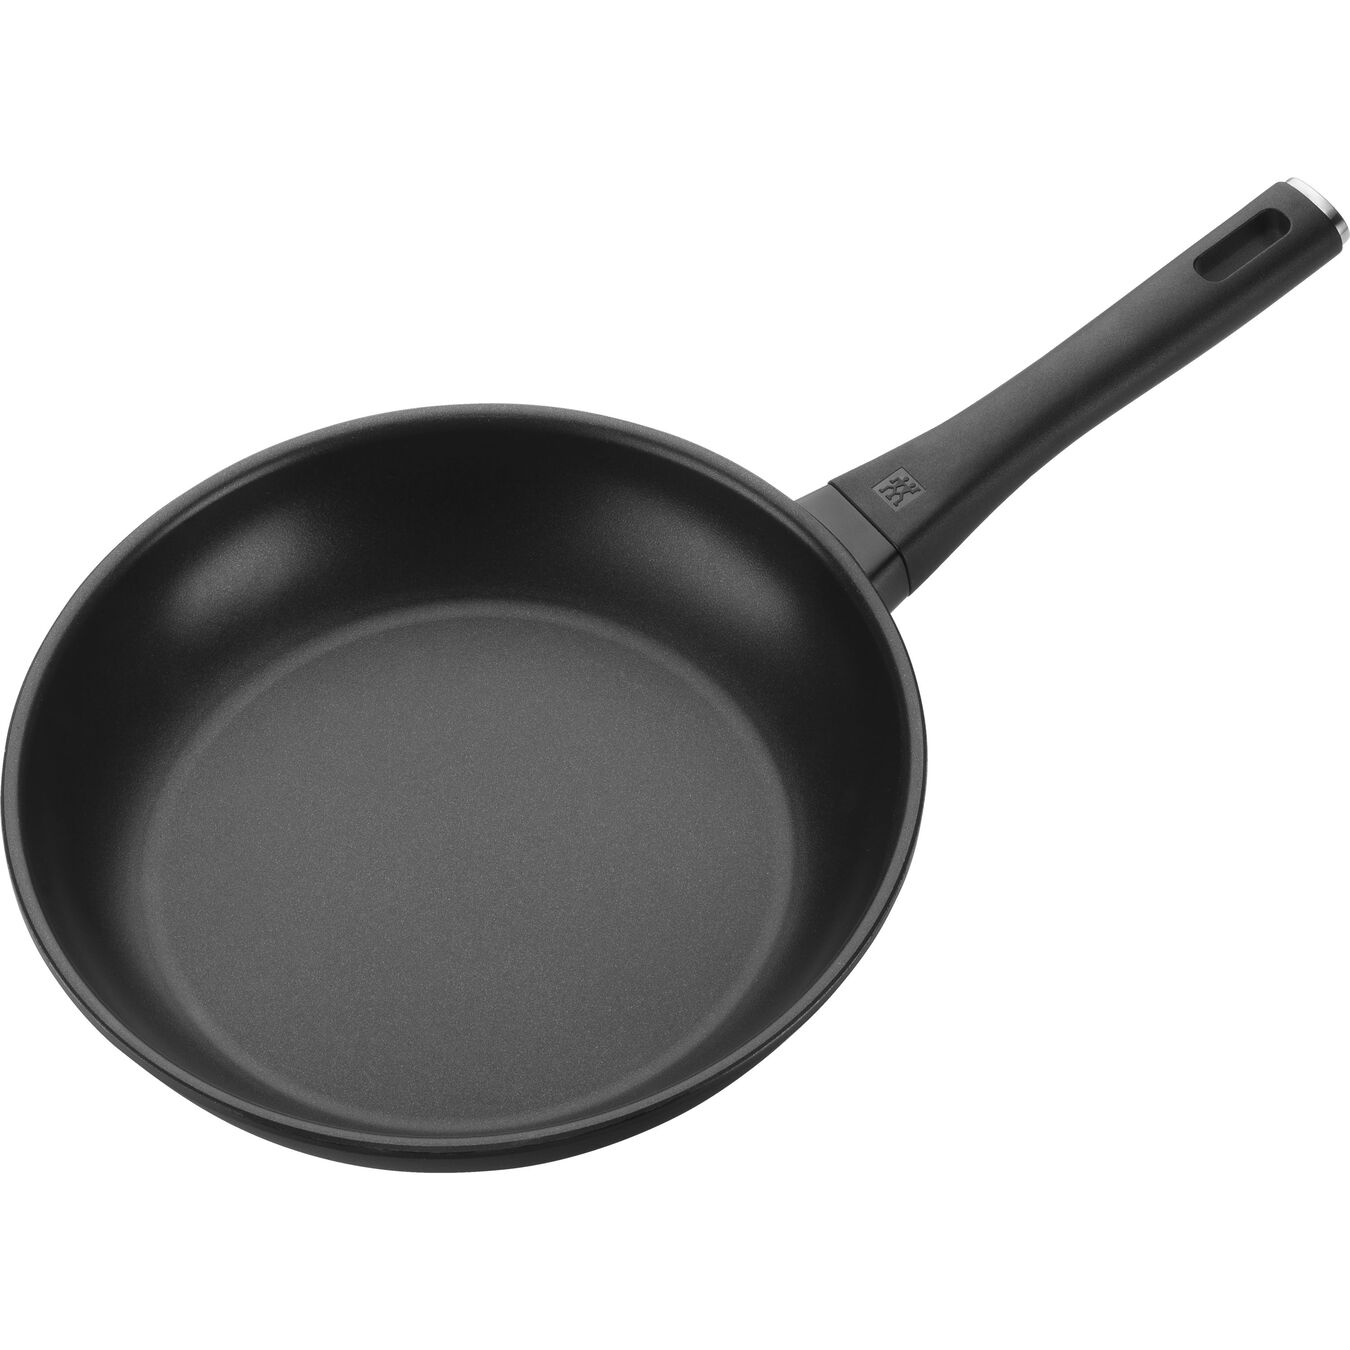 10-inch, Non-stick, Frying pan,,large 7